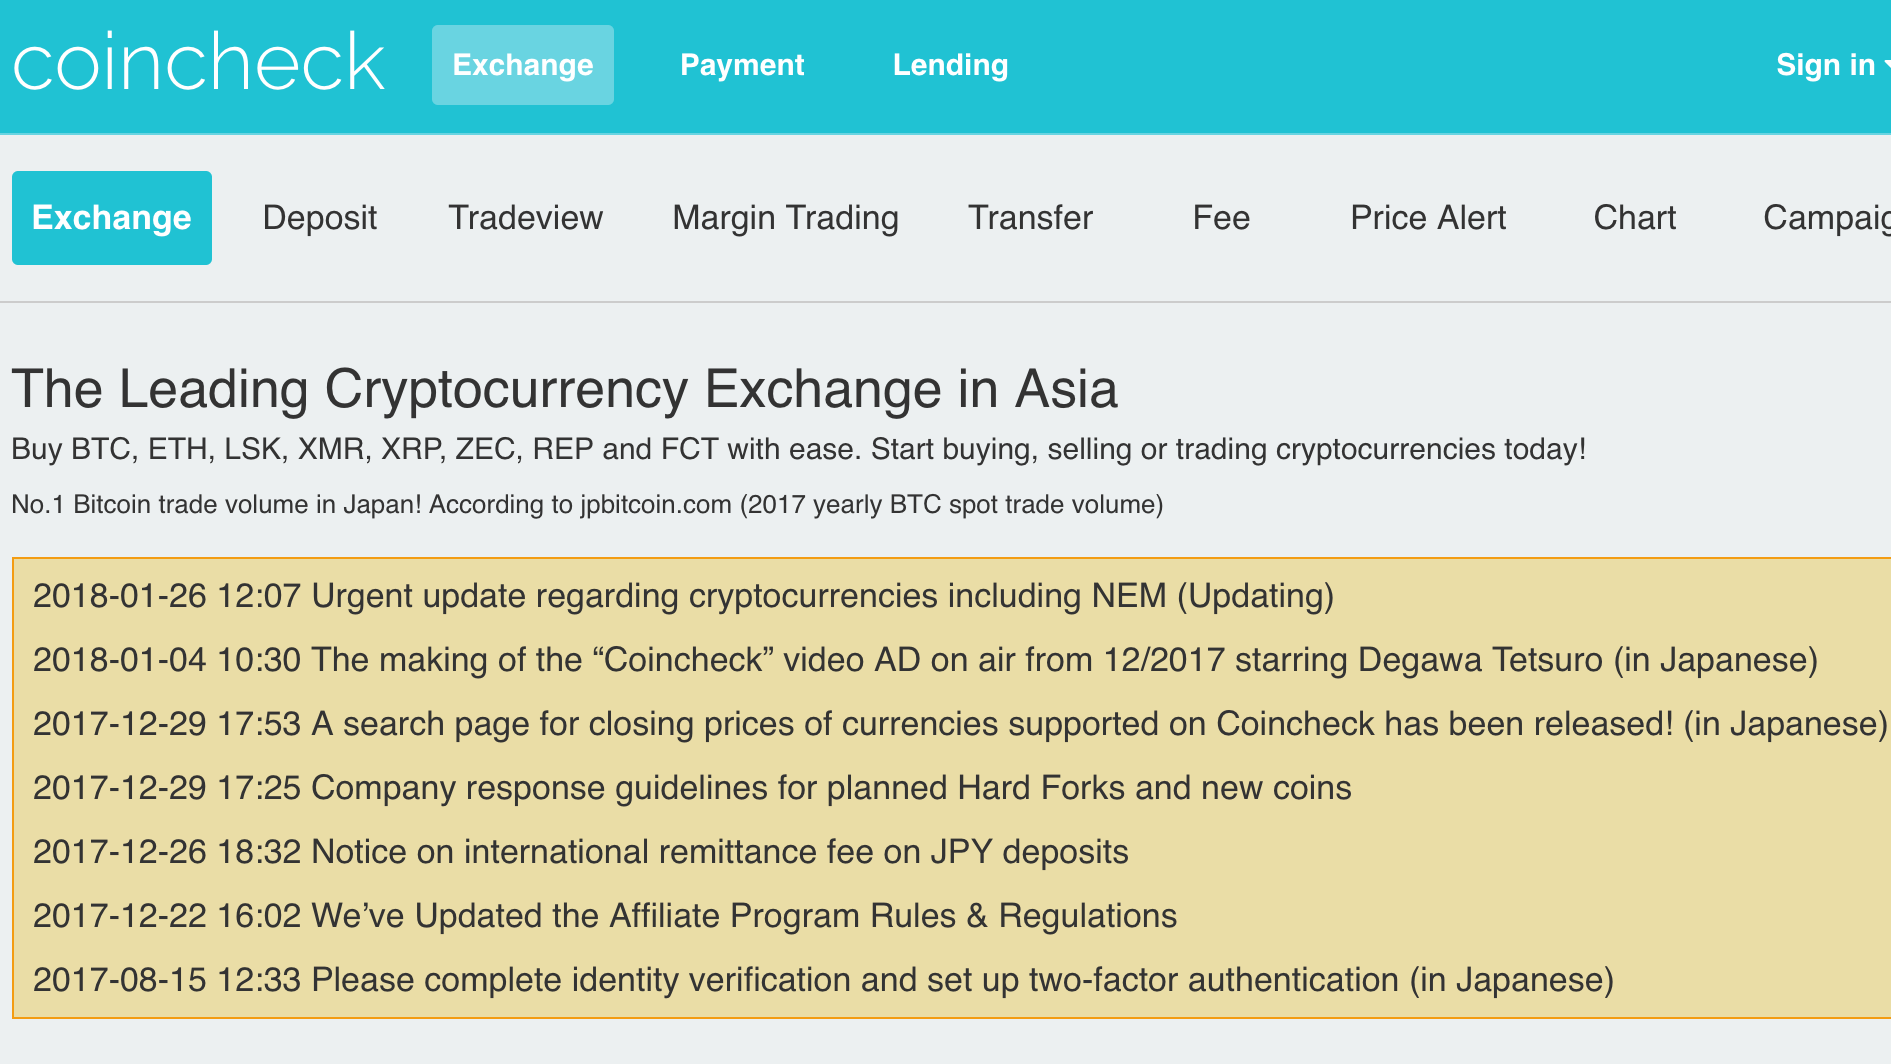 $500 Million Goes Missing From Japanese Crypto Exchange Coincheck